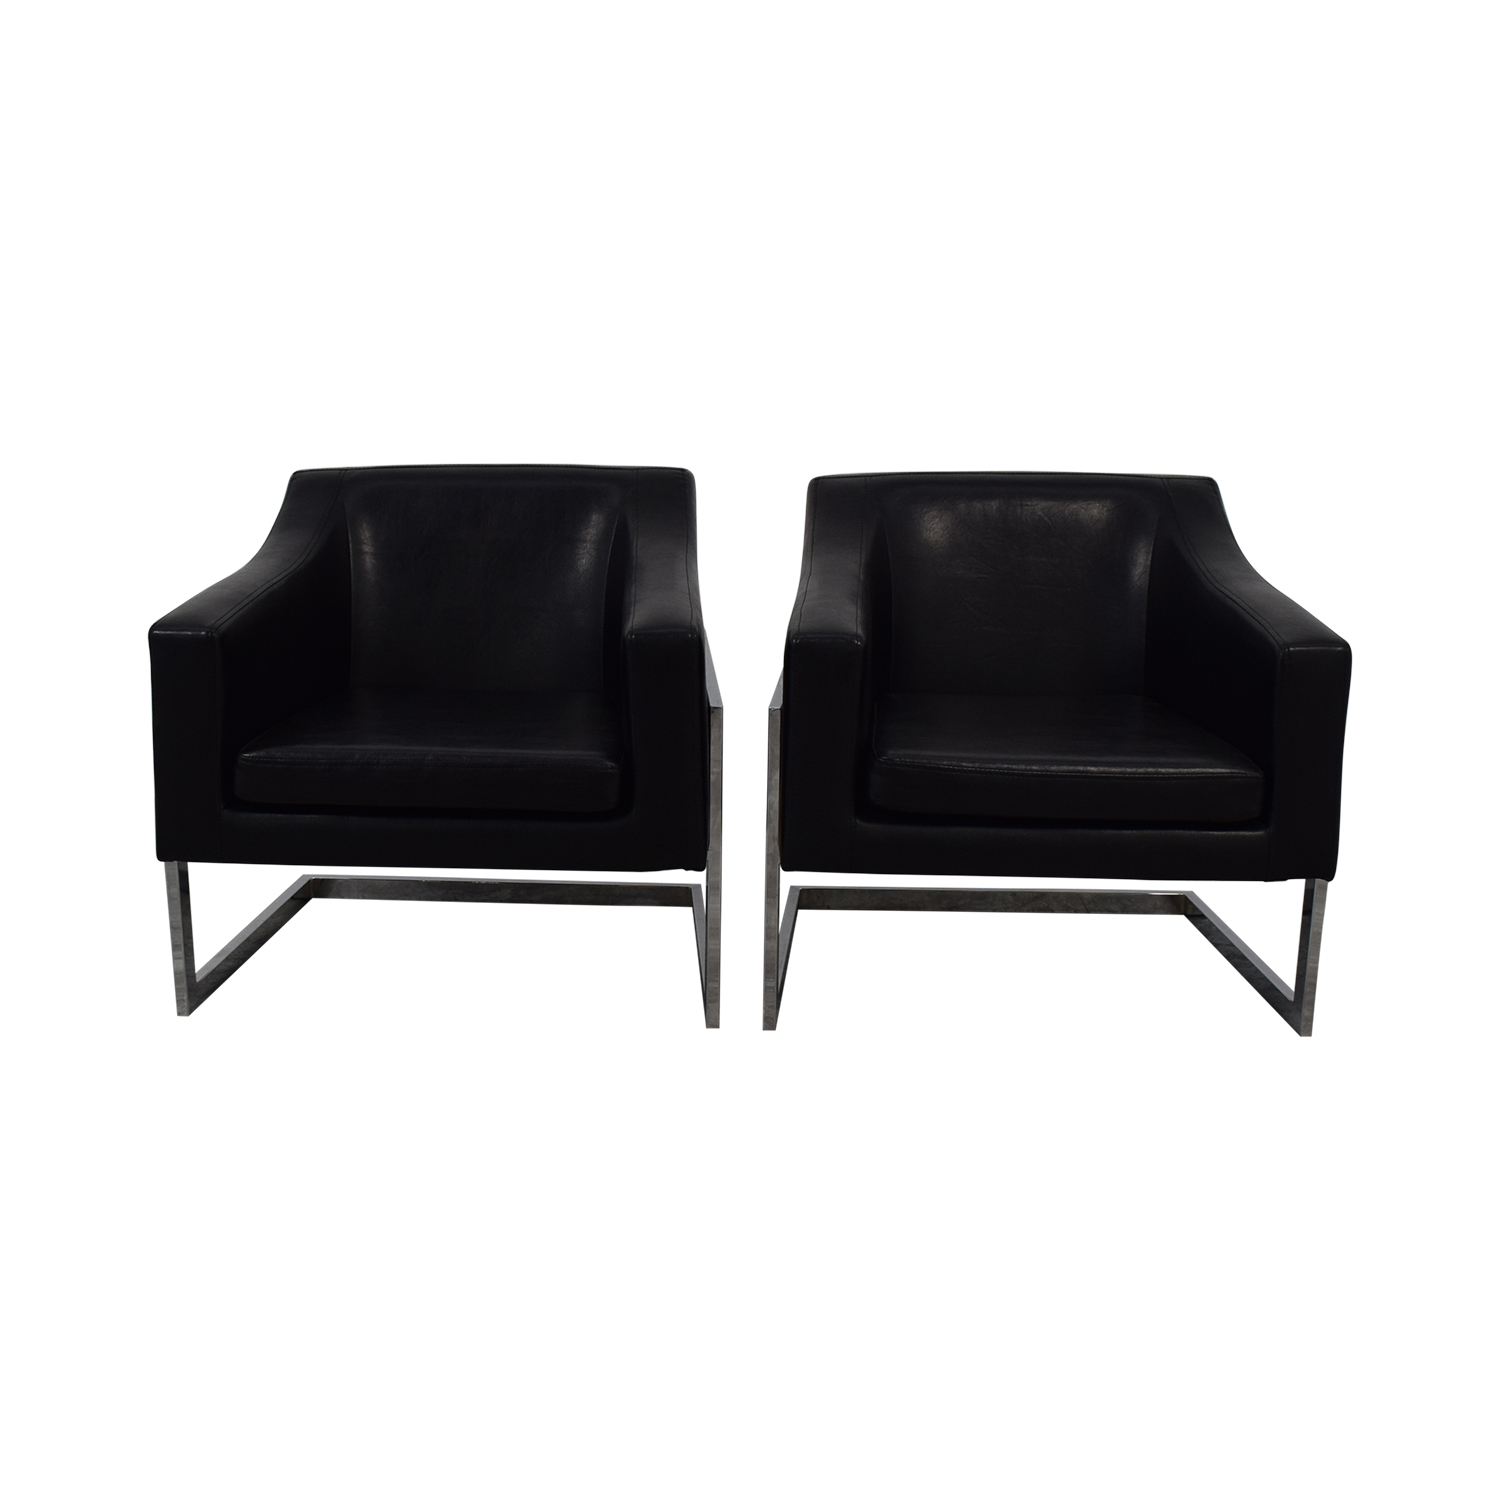 Coaster Fine Furniture Coaster Fine Furniture Black Accent Chairs second hand